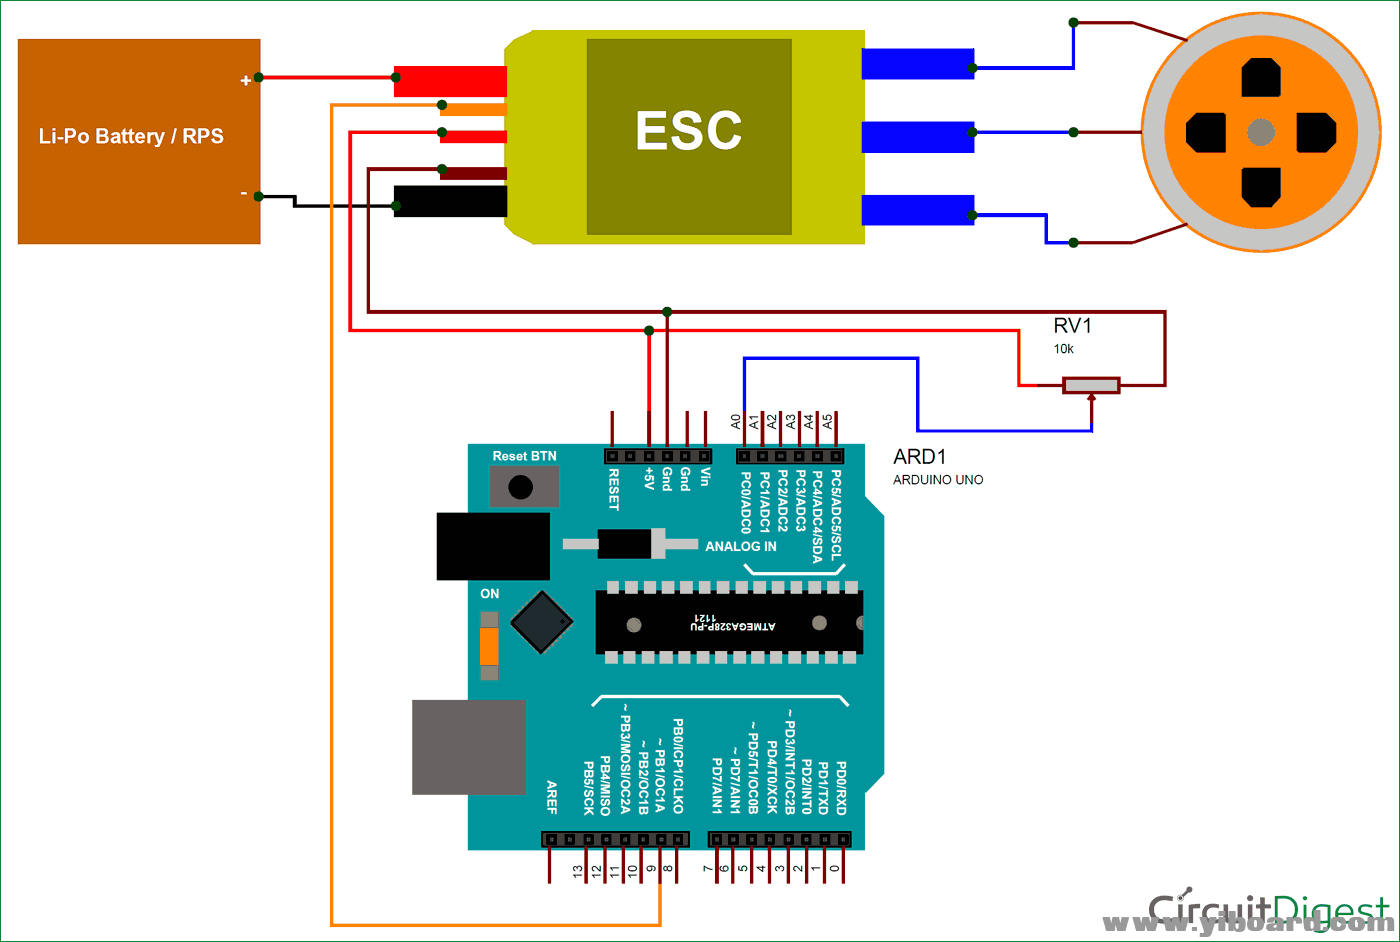 Circuit-Diagram-for-Controlling-Brushless-DC-motor-using-Arduino.png